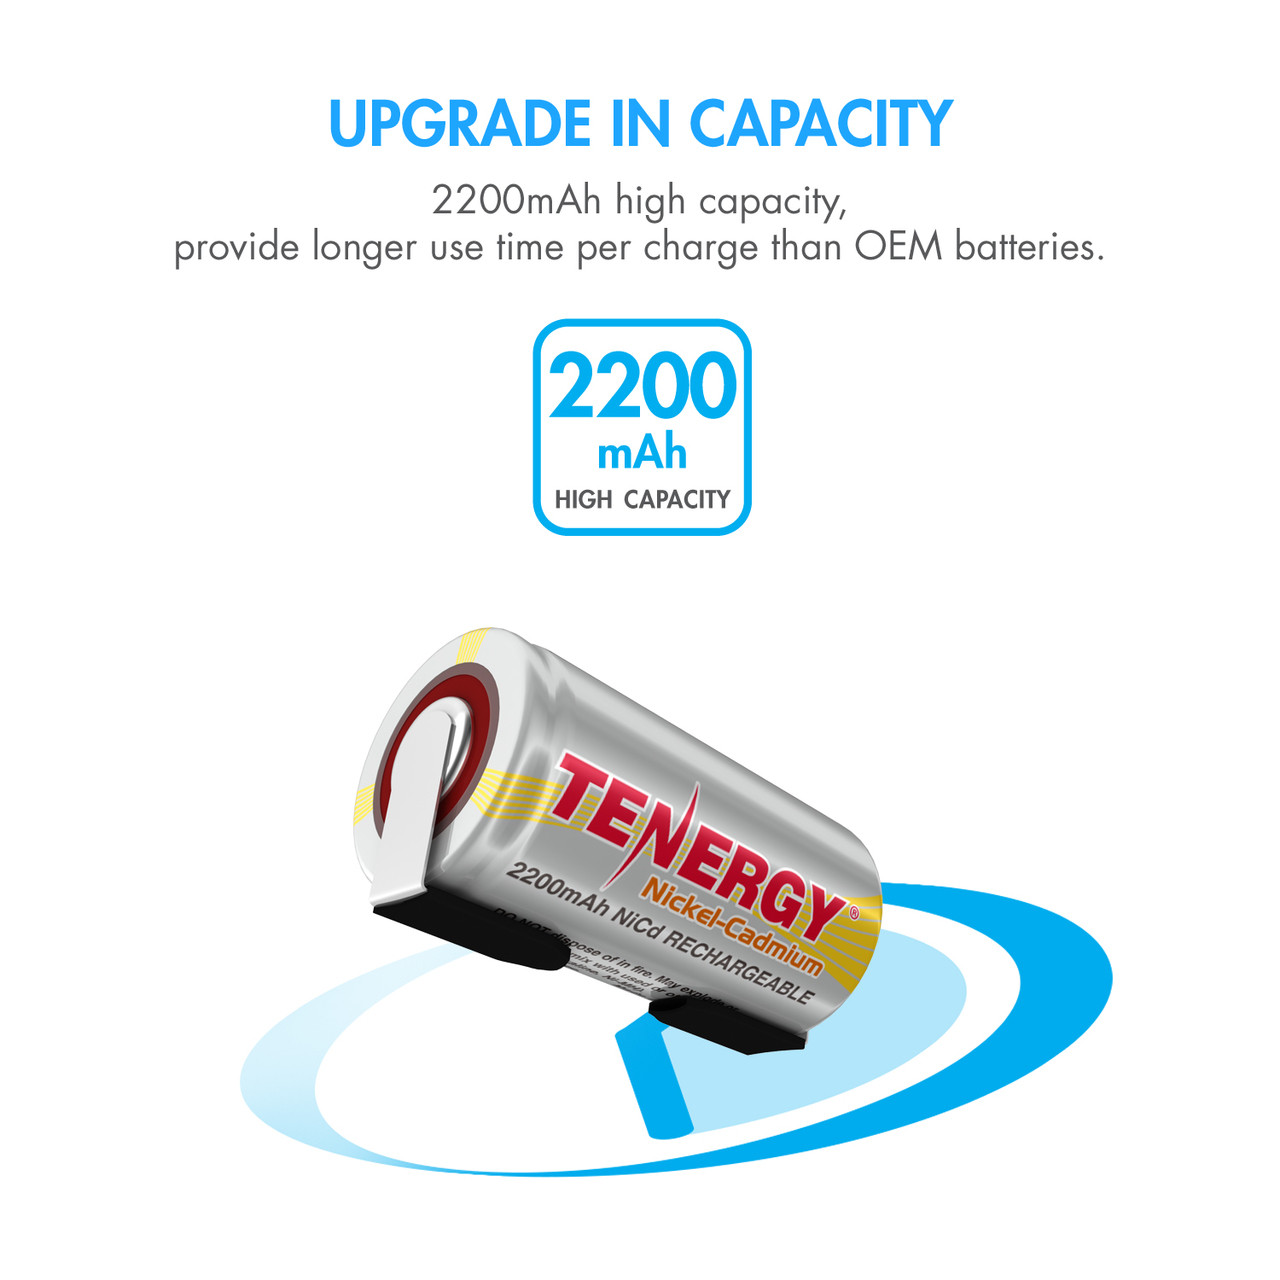 Tenergy Sub C 2200mAh NiCd Flat Top Rechargeable Battery